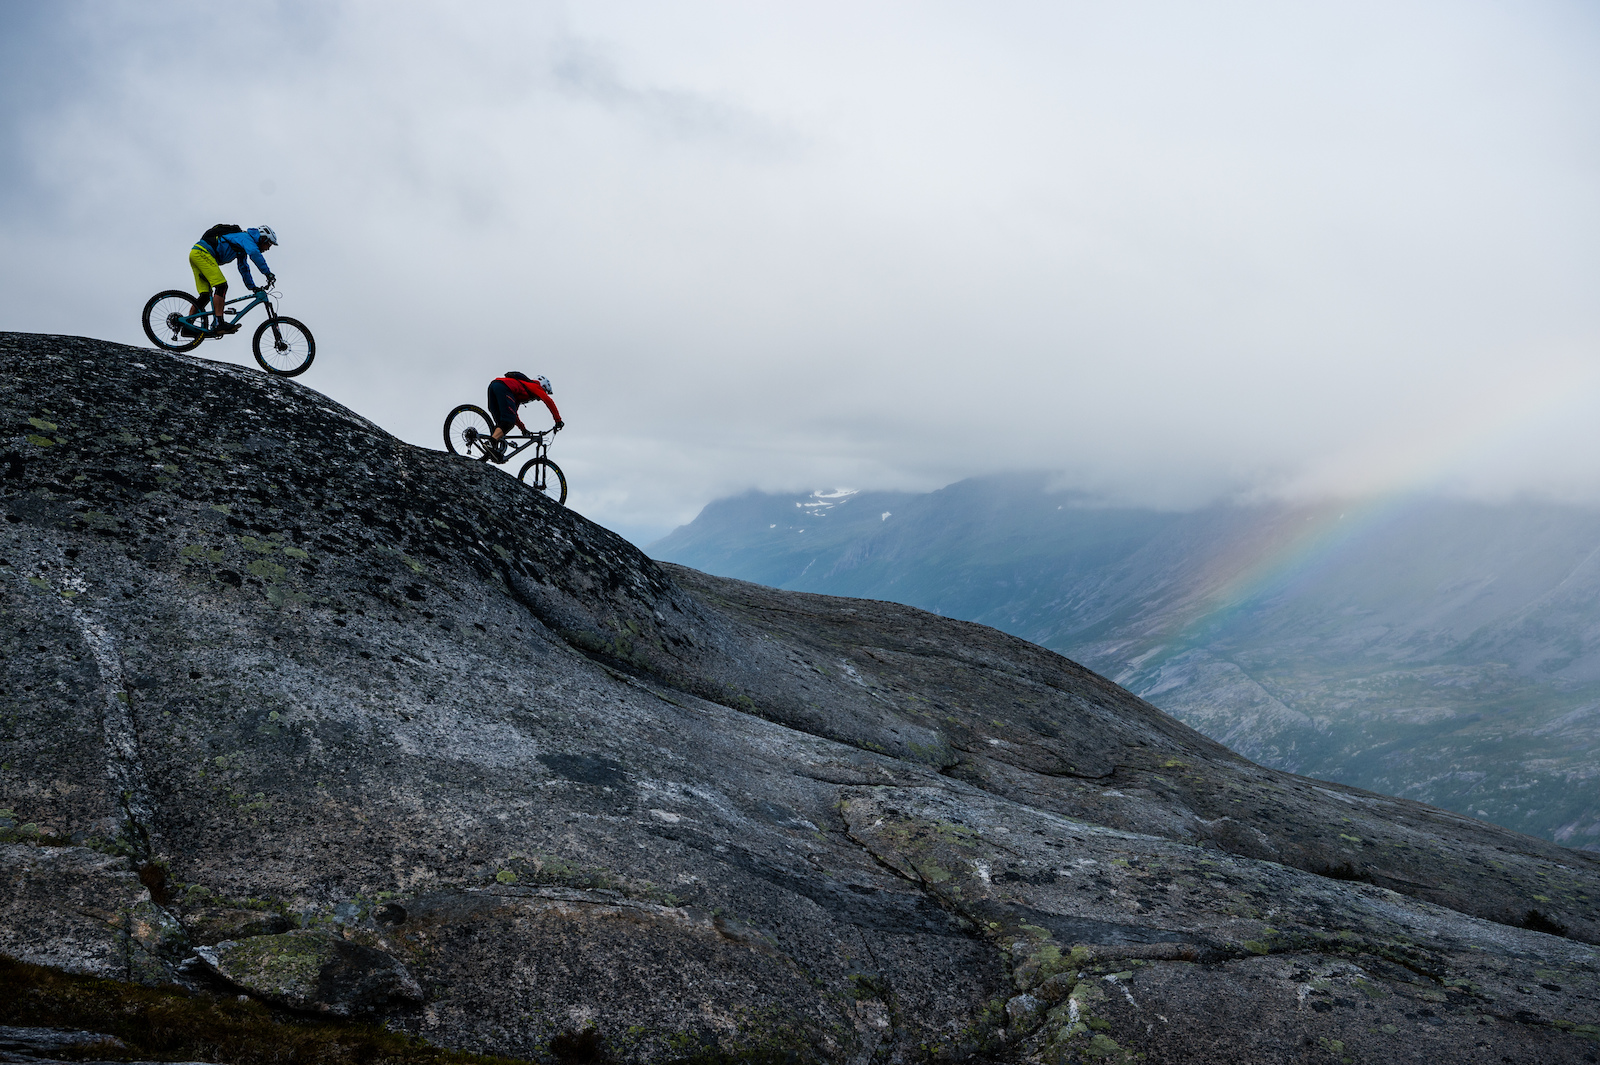 Joey Schulser and Mikael af Ekenstam riding in Skjomen Reinnesfjellet Norway.